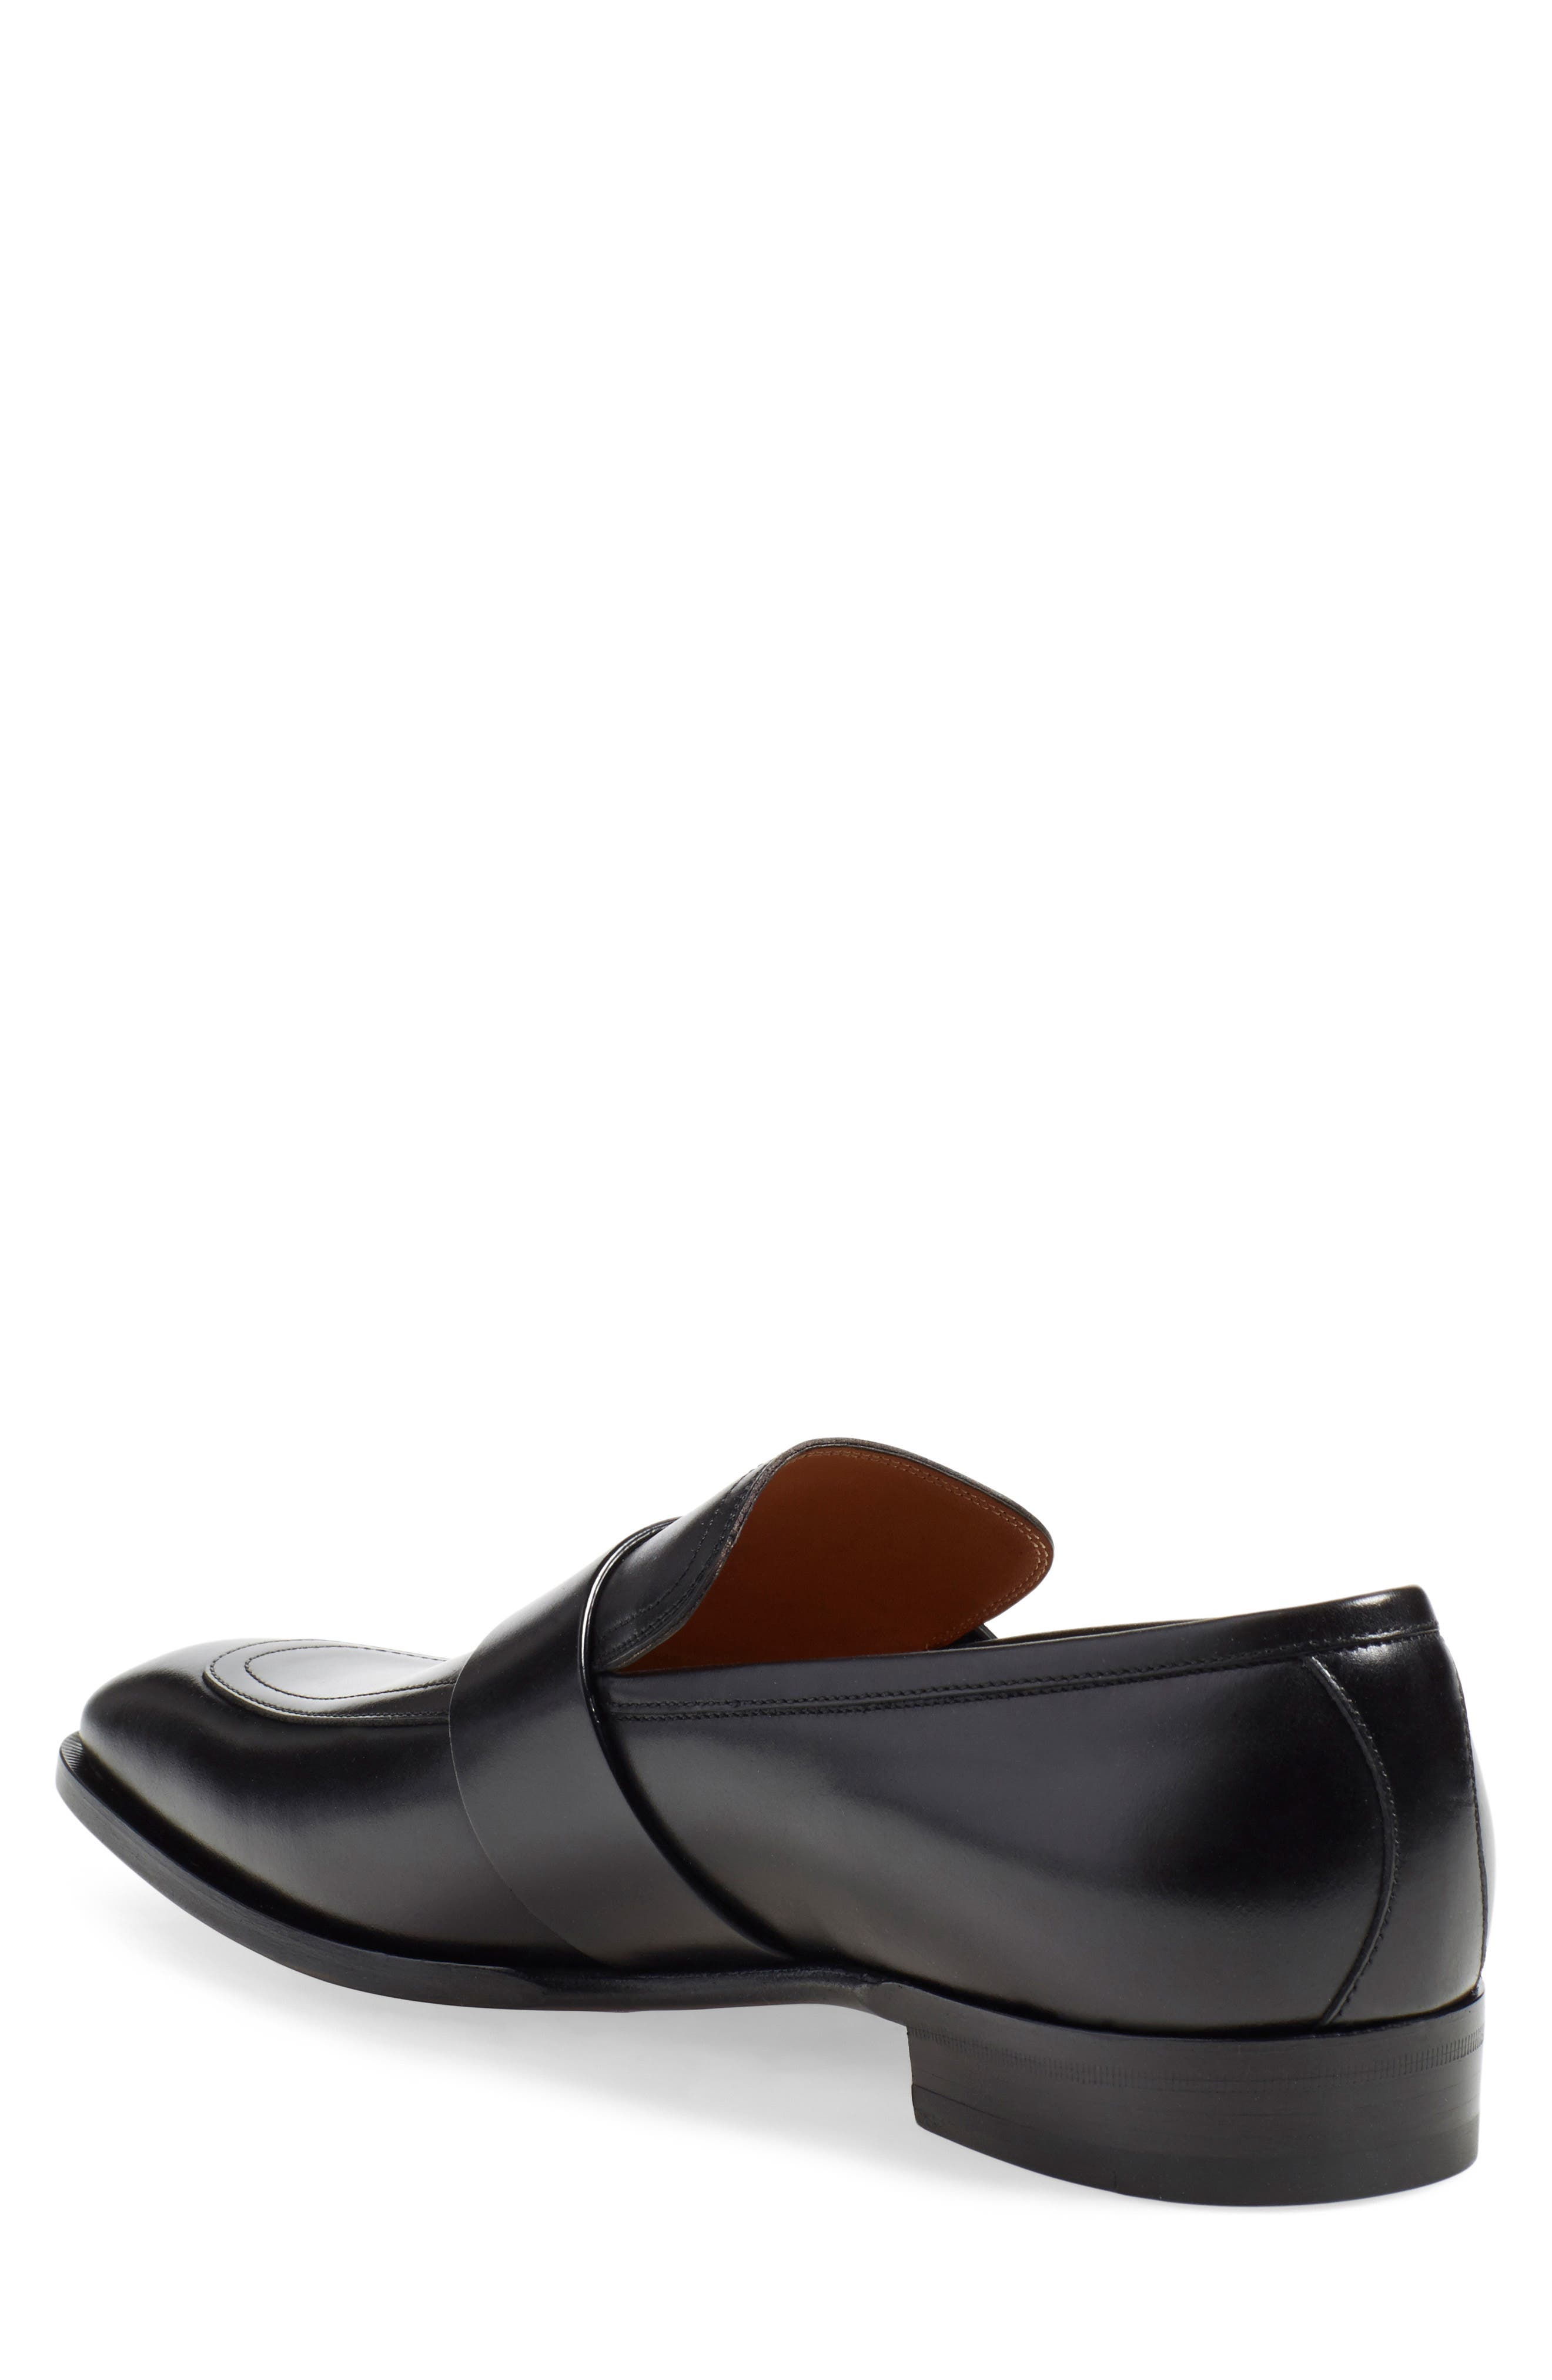 'Broadwick' Loafer,                             Alternate thumbnail 3, color,                             001